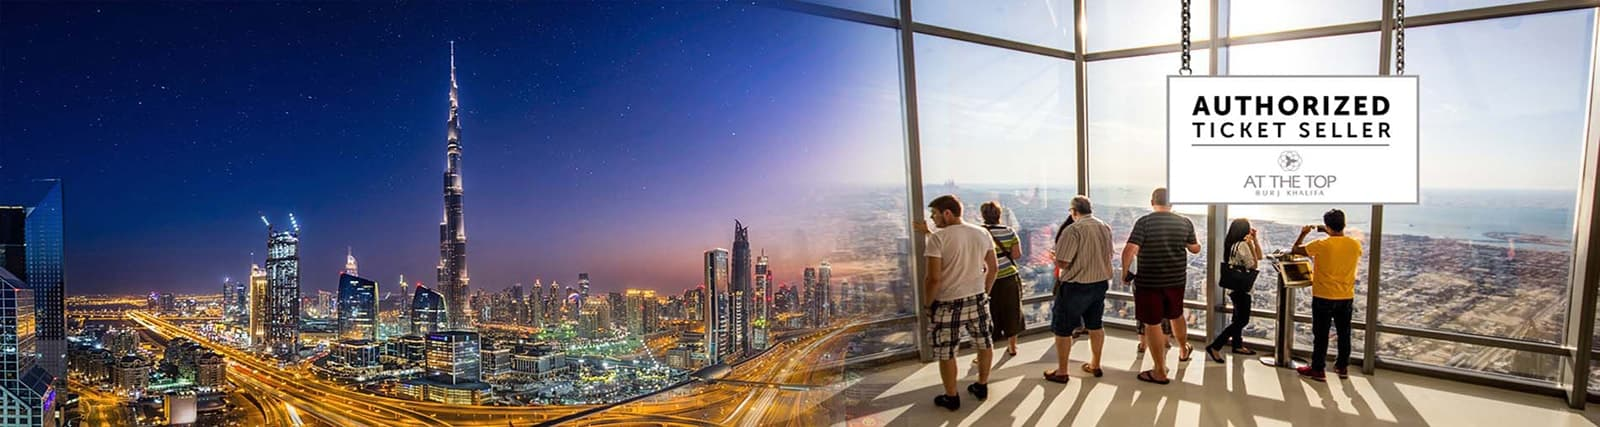 burj khalifa with aquarium tickets